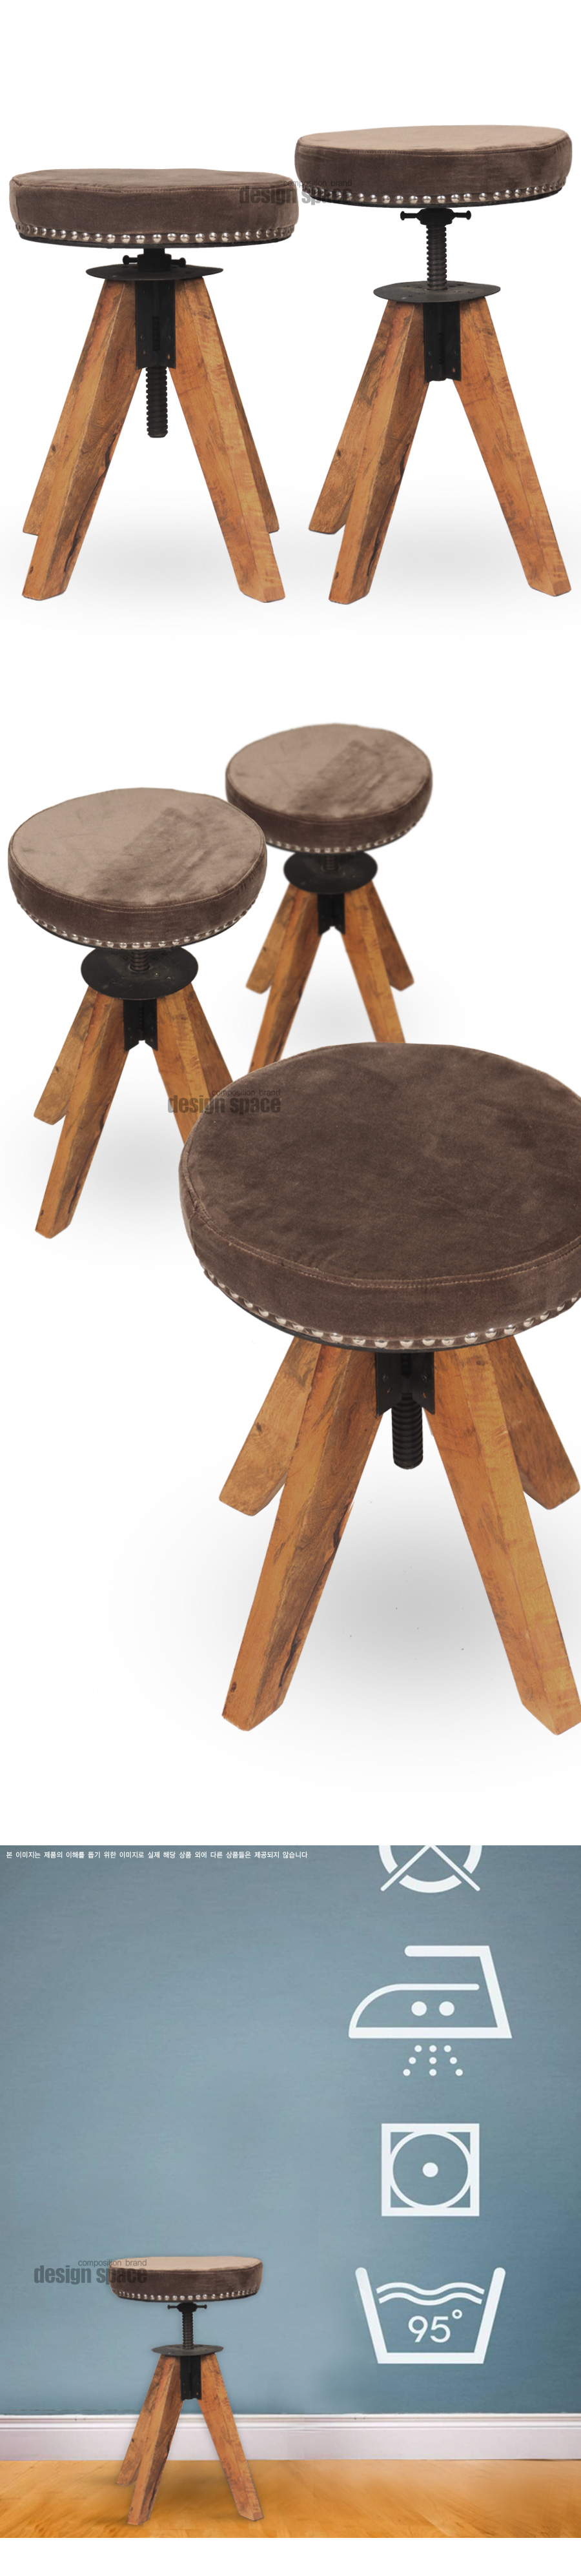 marga-stool_02.jpg